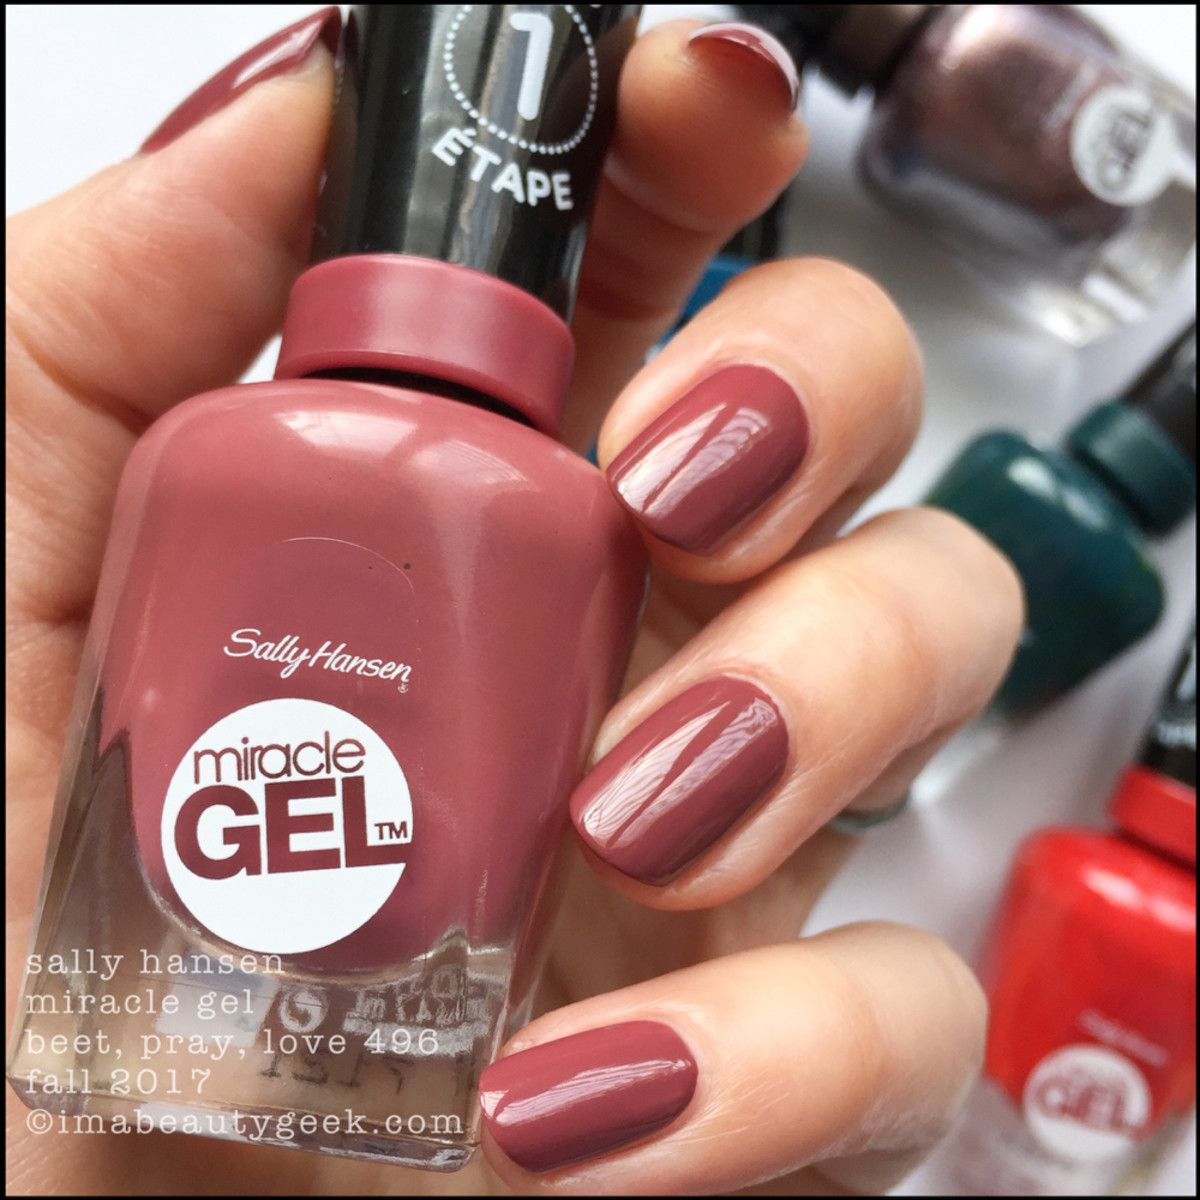 Sally Hansen Miracle Gel Swatches Fall 2017 Morocco Nechty Licenie